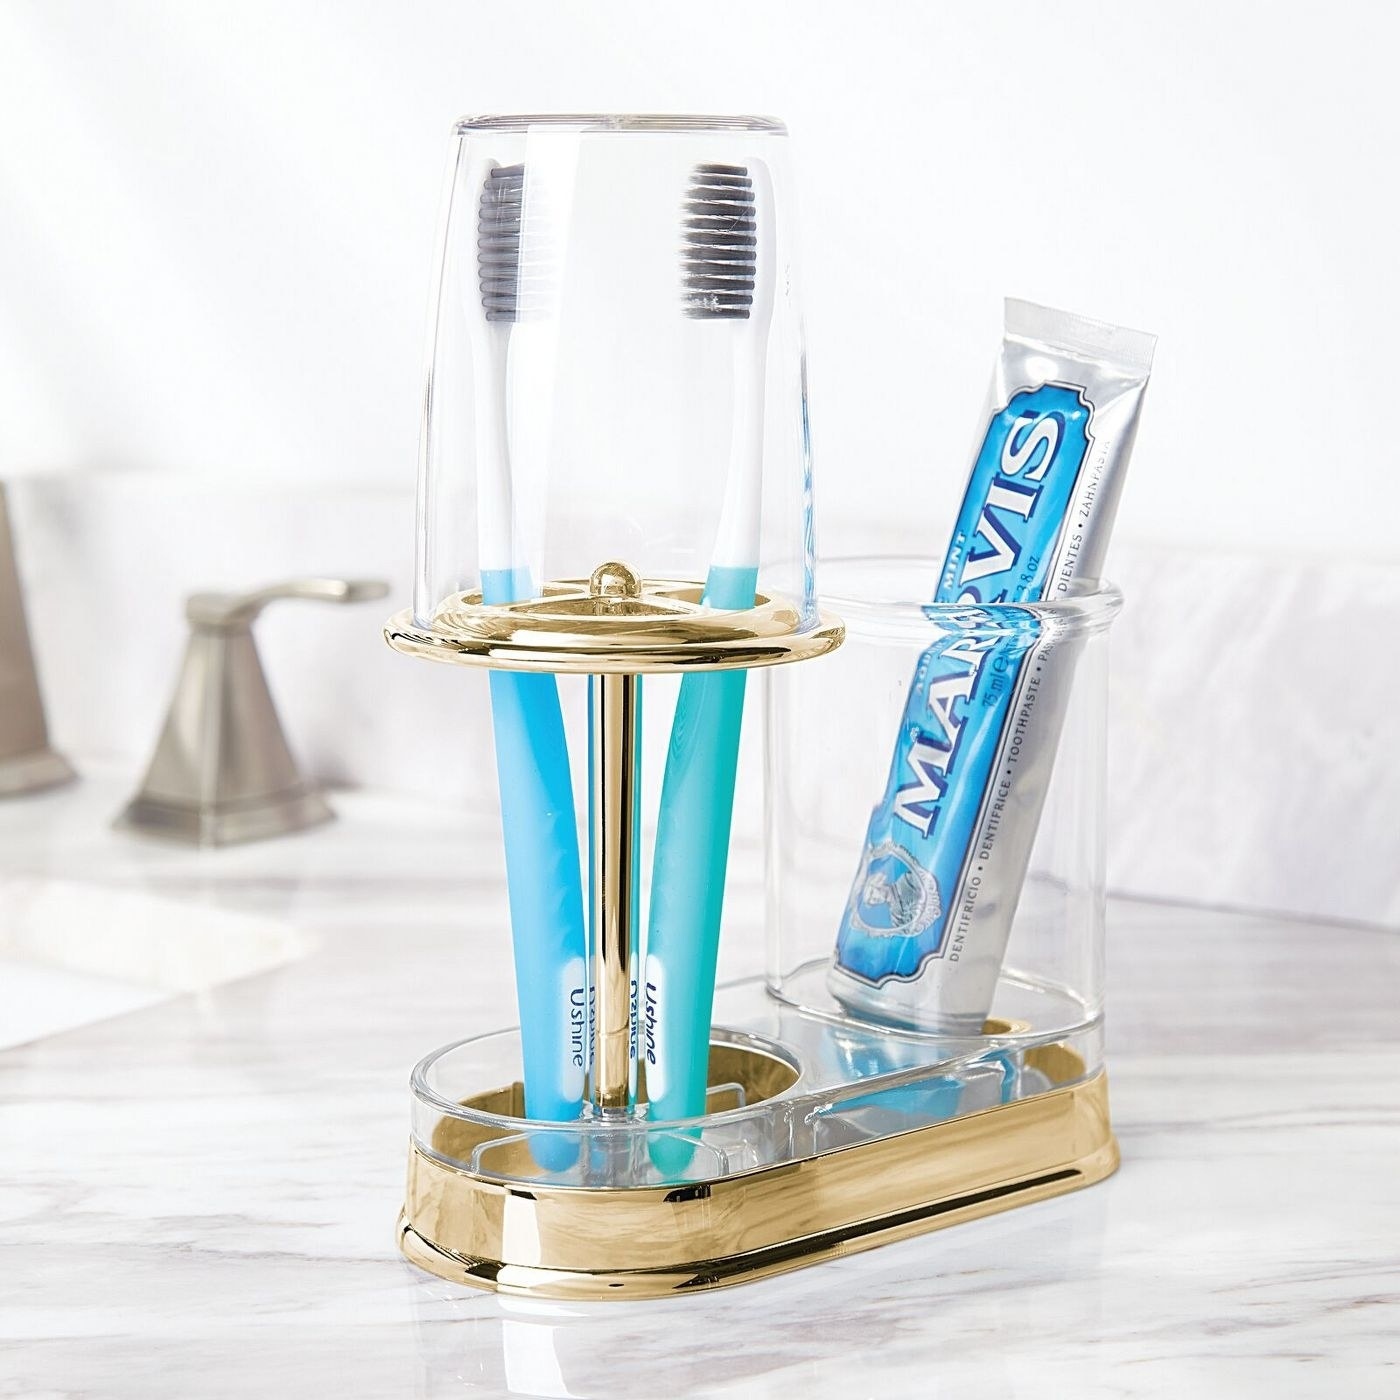 a god toothbrush, toothpaste, and rinse cup holder